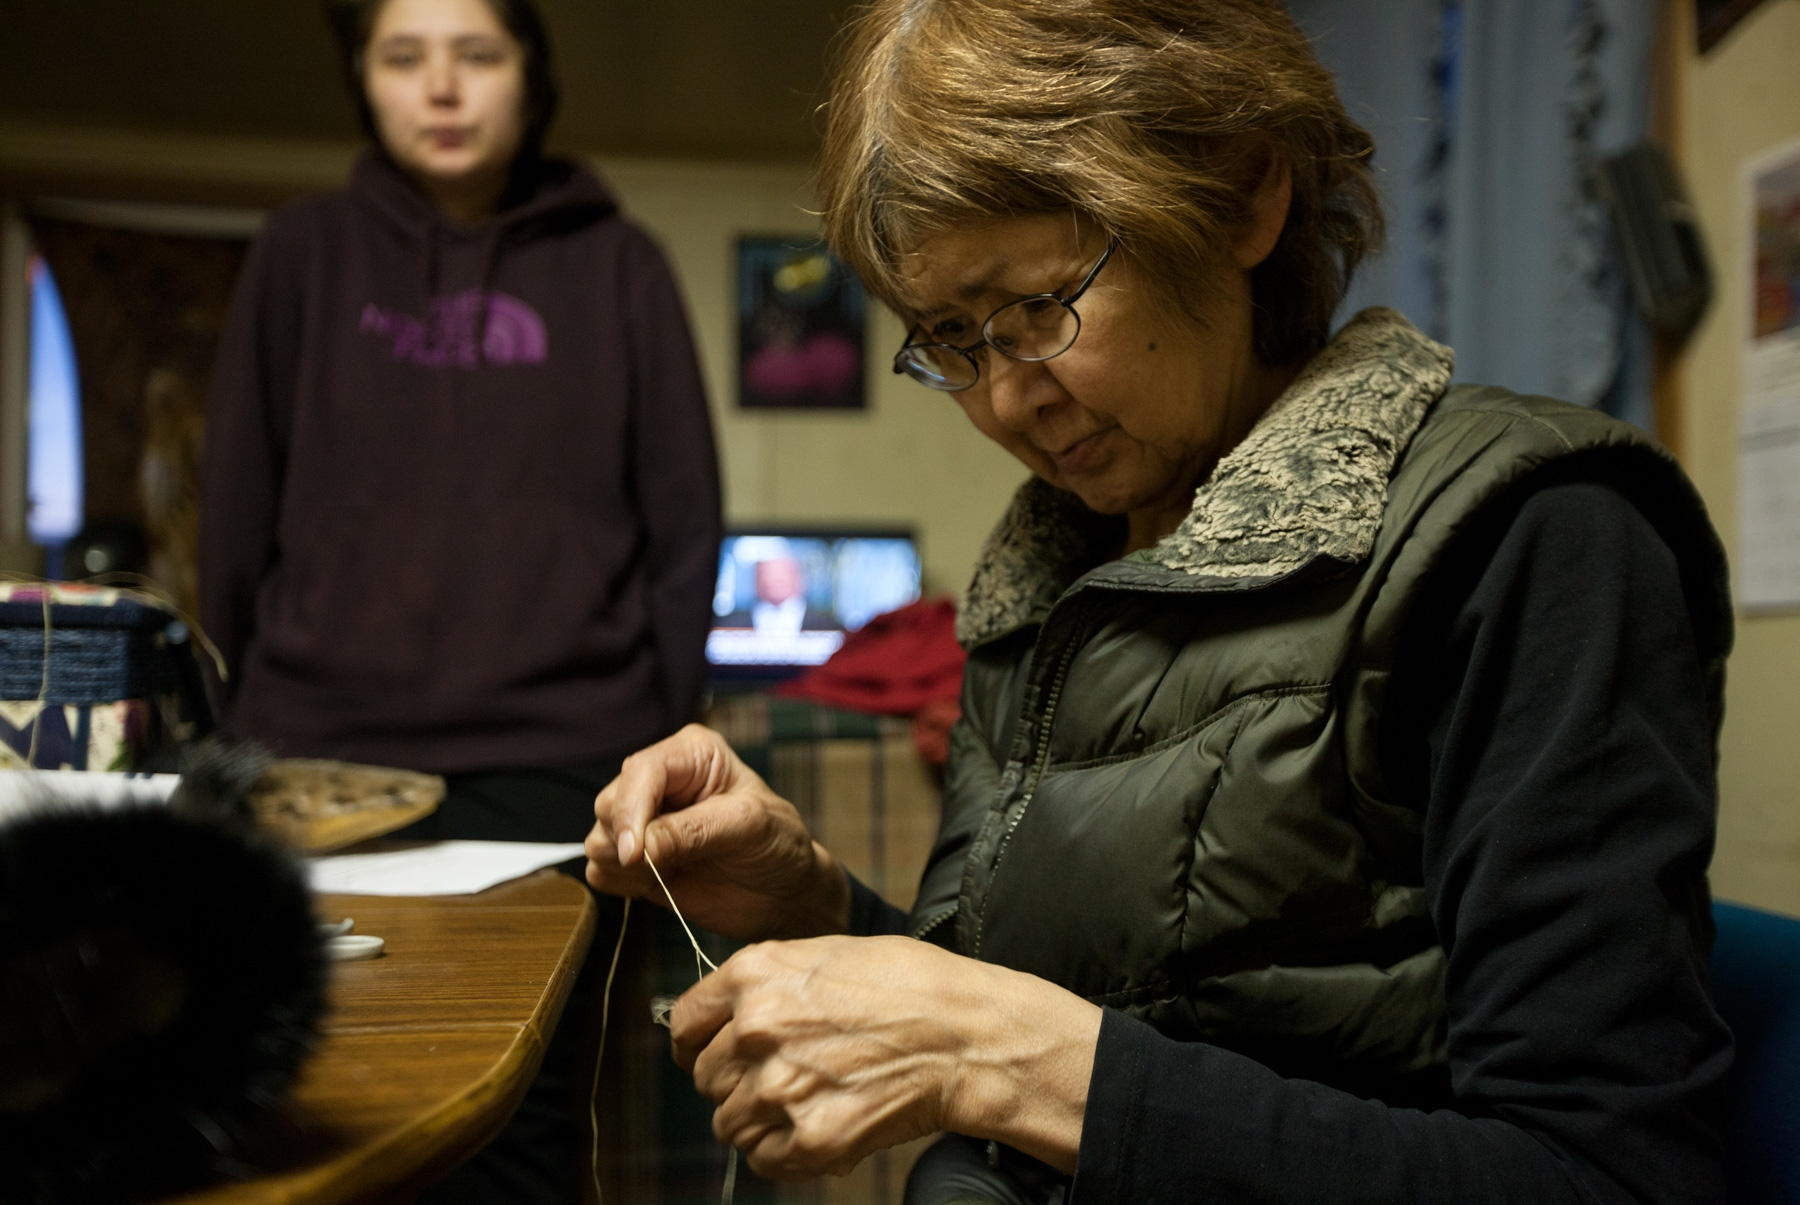 Allison Neyoktok, 26, watches her mother, Catherine Neyoktok, 62, sew mittens using seal fur and skin. On weeknights they play bingo at the Shishmaref Community Center. Catherine is a fourth generation of Neyoktoks born in Shishmaref.